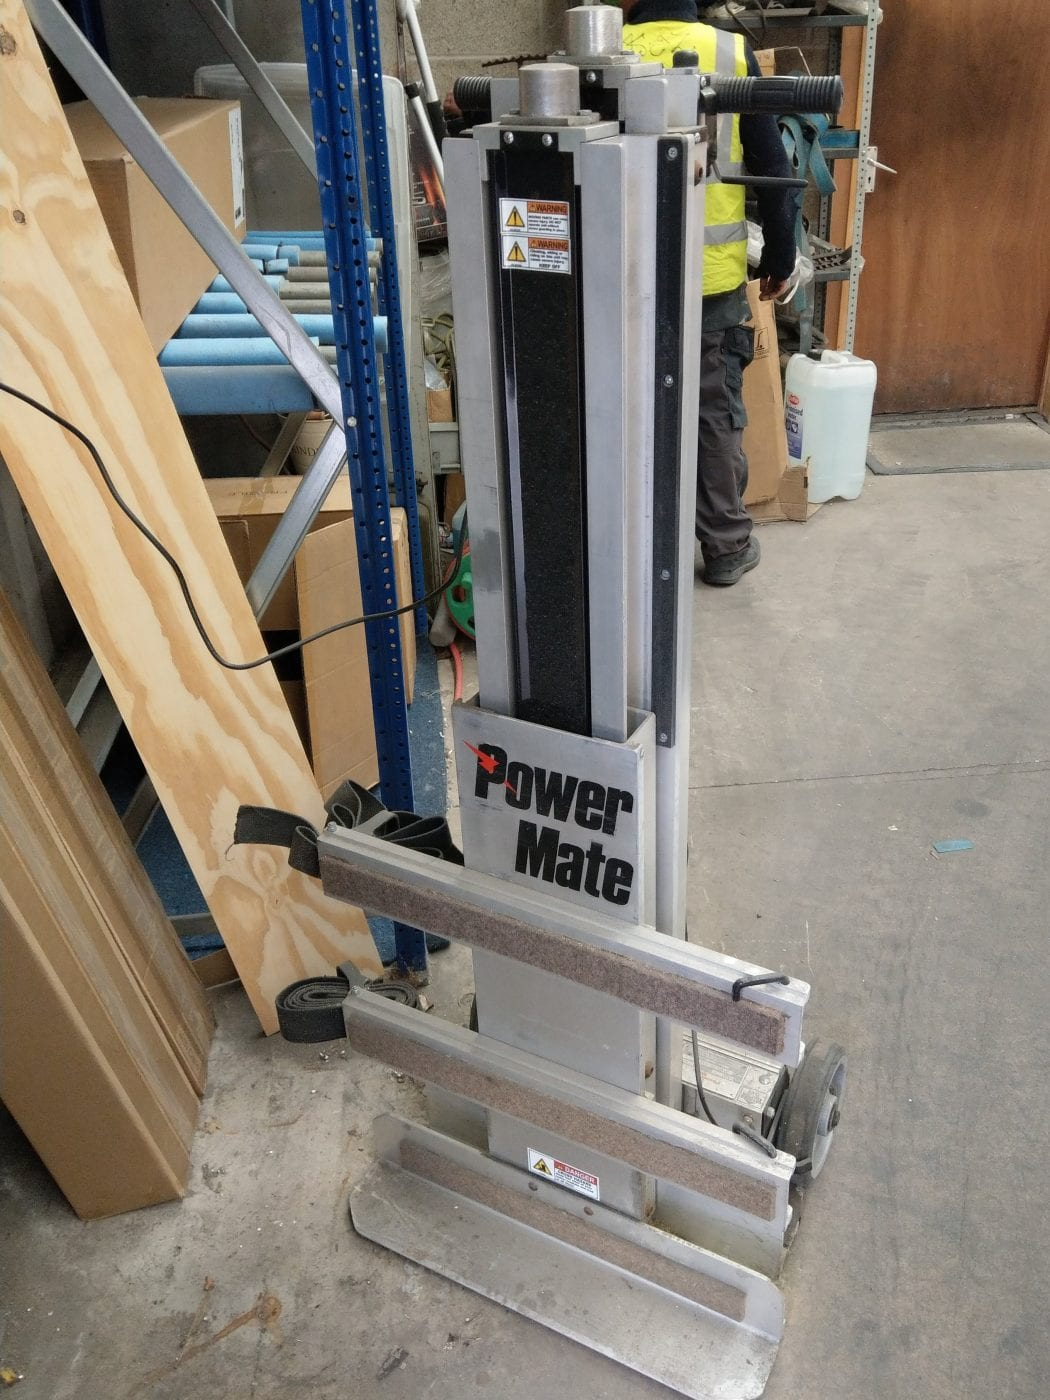 Stair Climber Bargains and Sales   Used and Reconditioned Powered